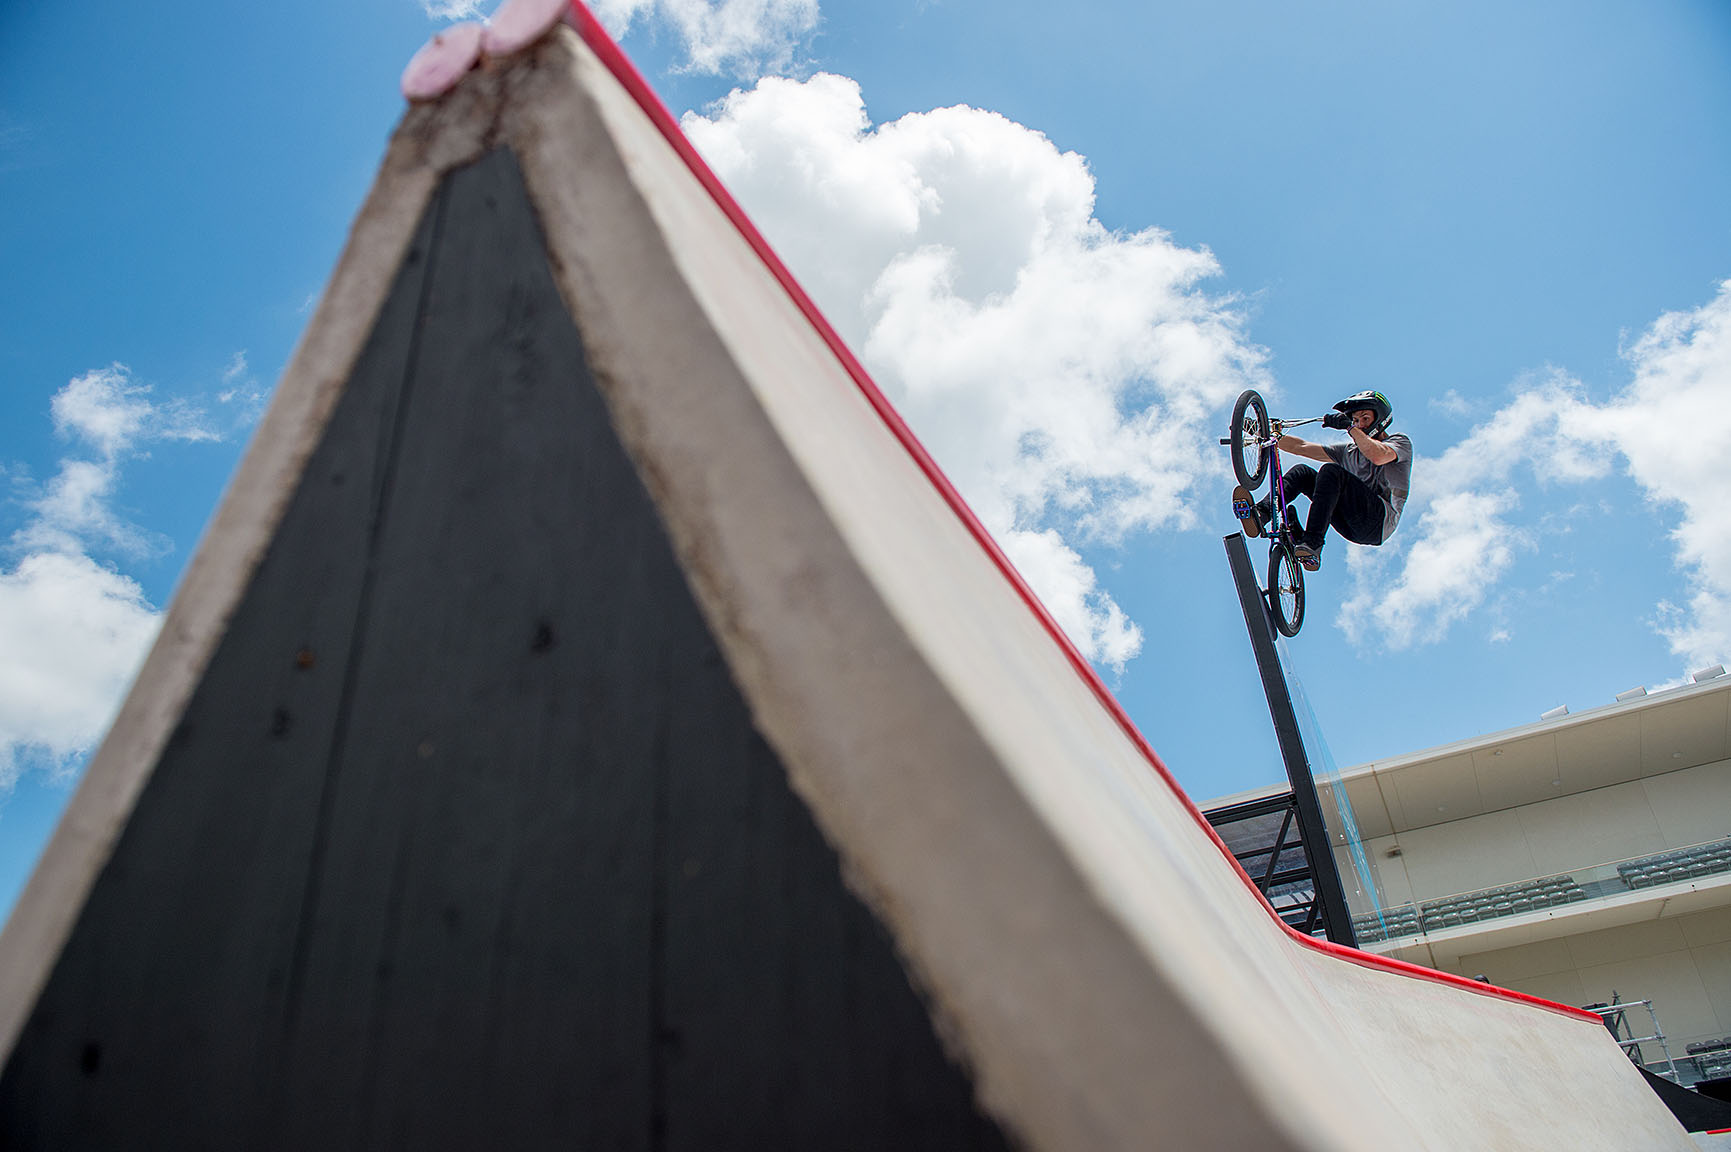 Scotty Cranmer has blocked the X Games BMX Park three-peat attempts of others (Dave Mirra in 2006 and Daniel Dhers in 2009 and 2012) on his way to gold medal wins of his own. After earning bronze in 2015, his ninth Park medal, Cranmer tied Mirra's record for the most total medals in the discipline.